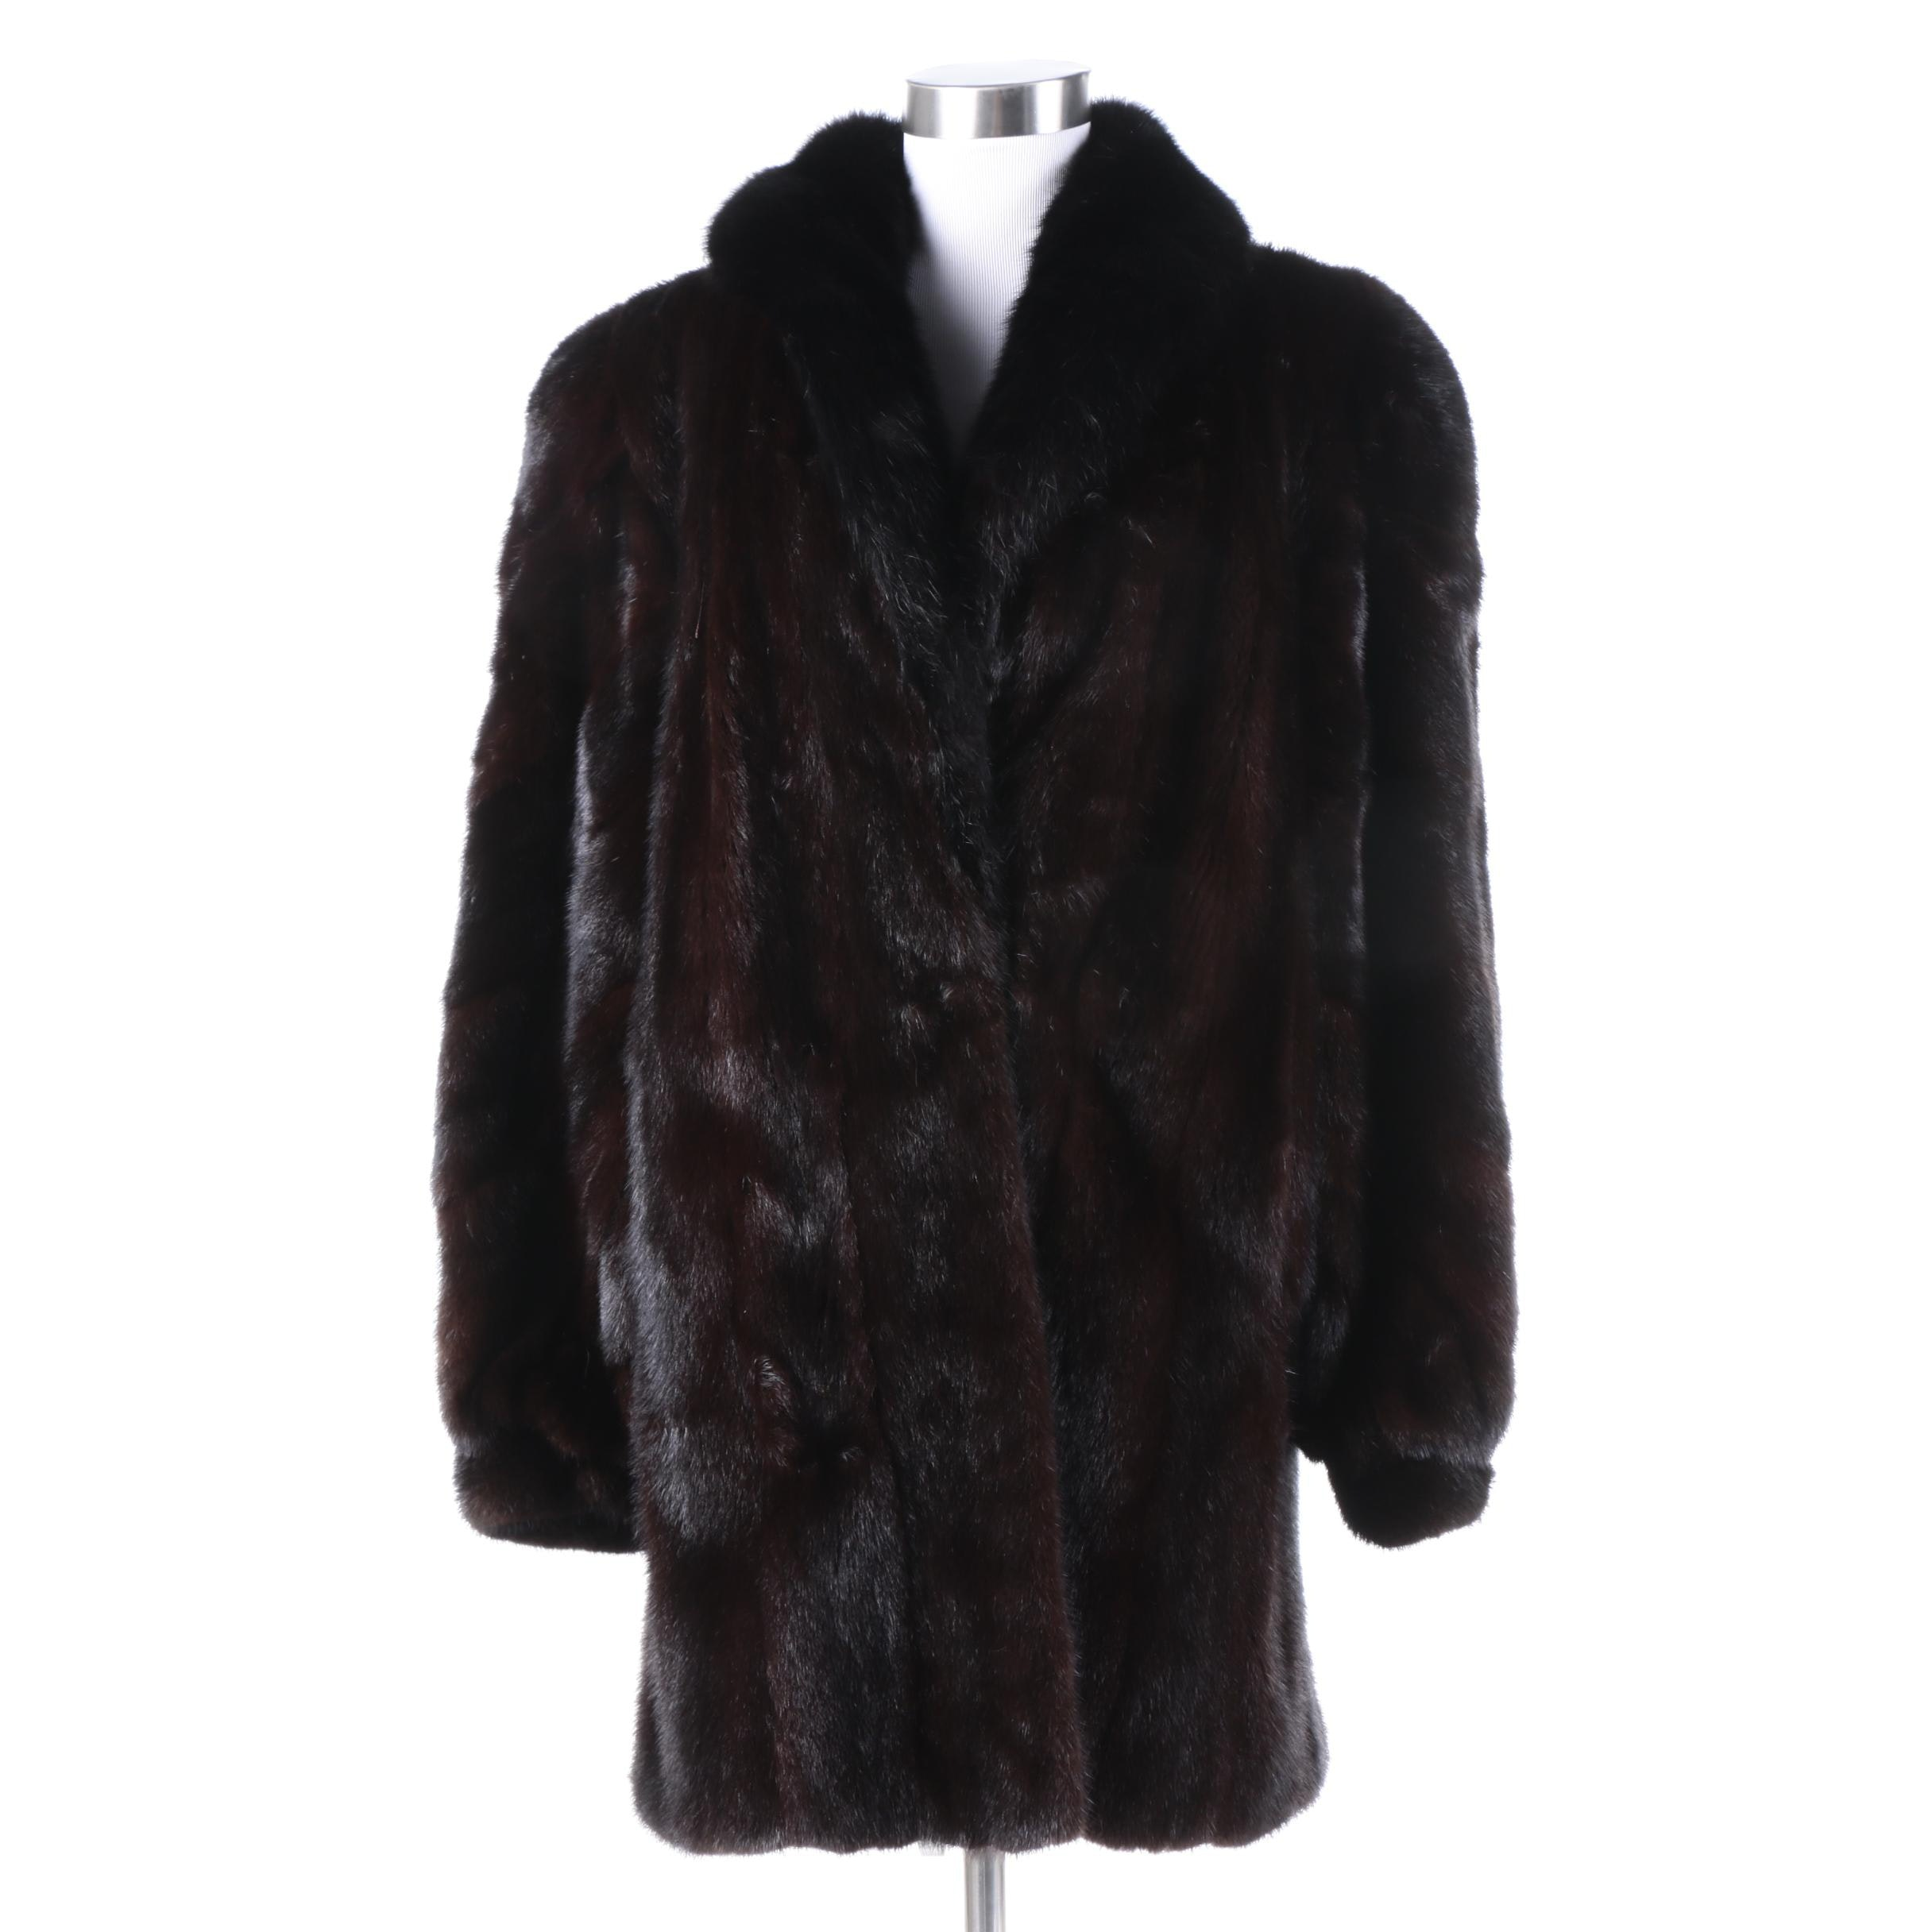 Vintage Mink Coat with Fox Fur Collar